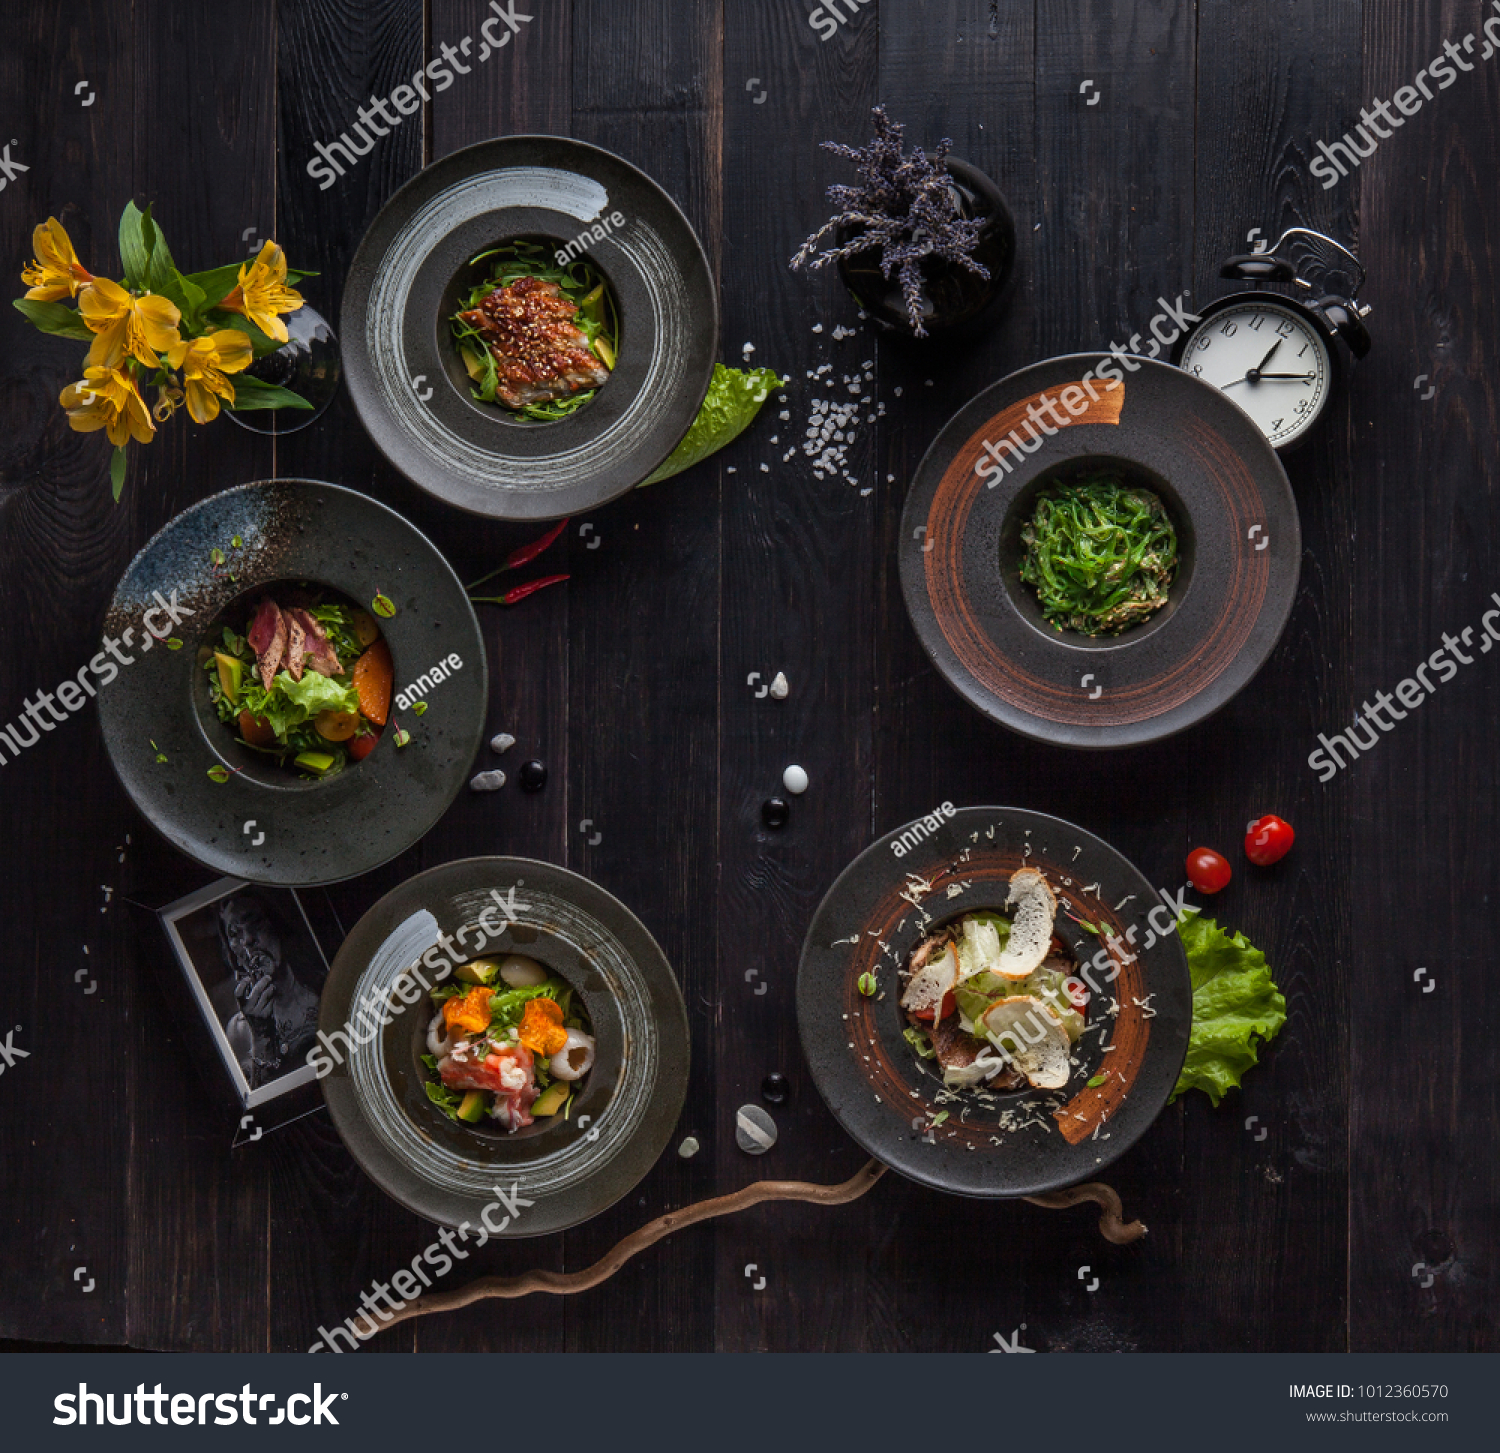 Plates Restaurant Dishes On Black Table Stock Photo Edit Now 1012360570